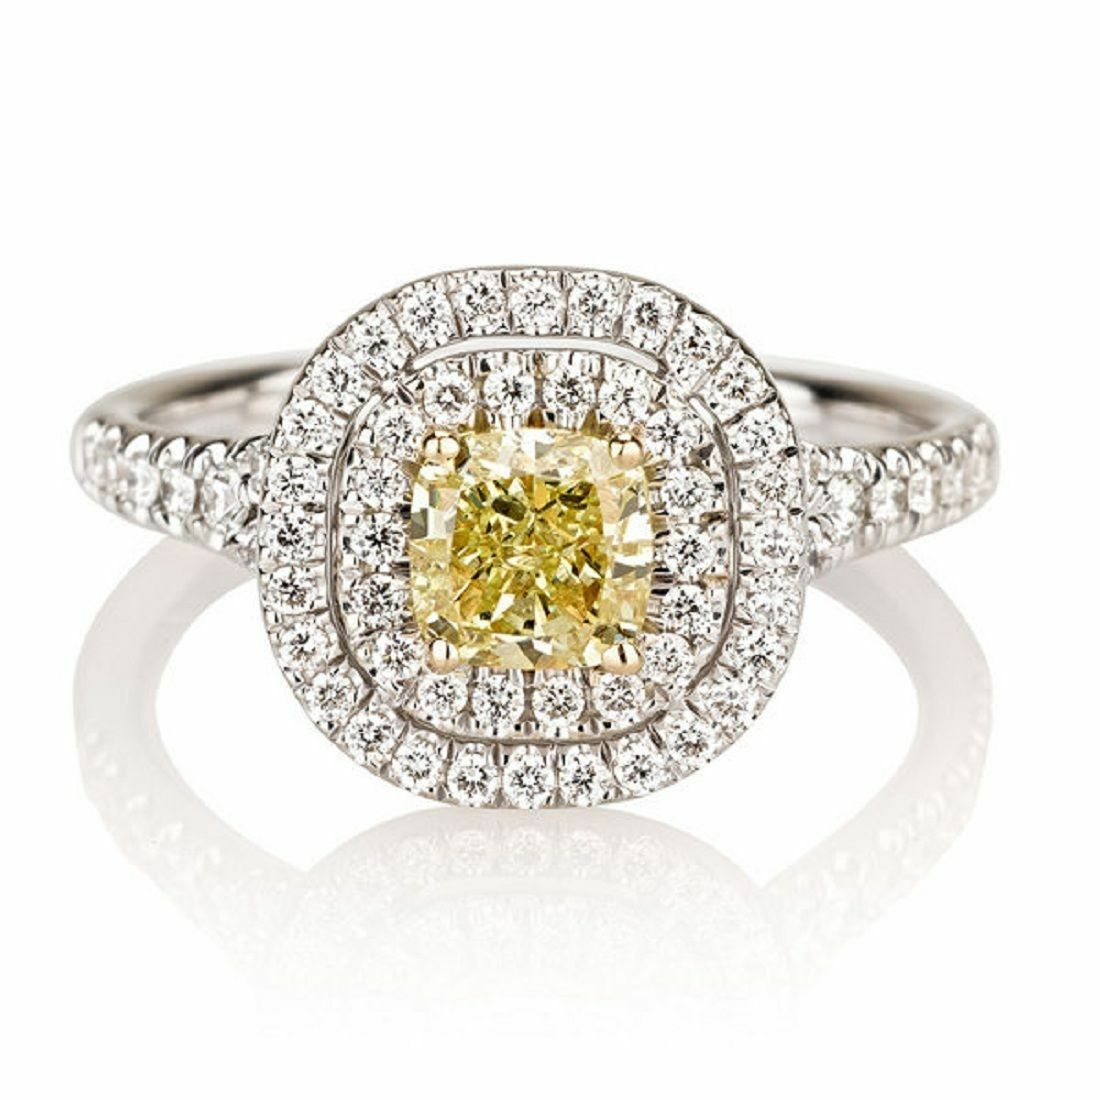 Intelligent 7mm Platinum Plated Silver 1.5ct Cz Half Bezel Wedding Engagement Ring Size8 Jewelry & Watches Rings